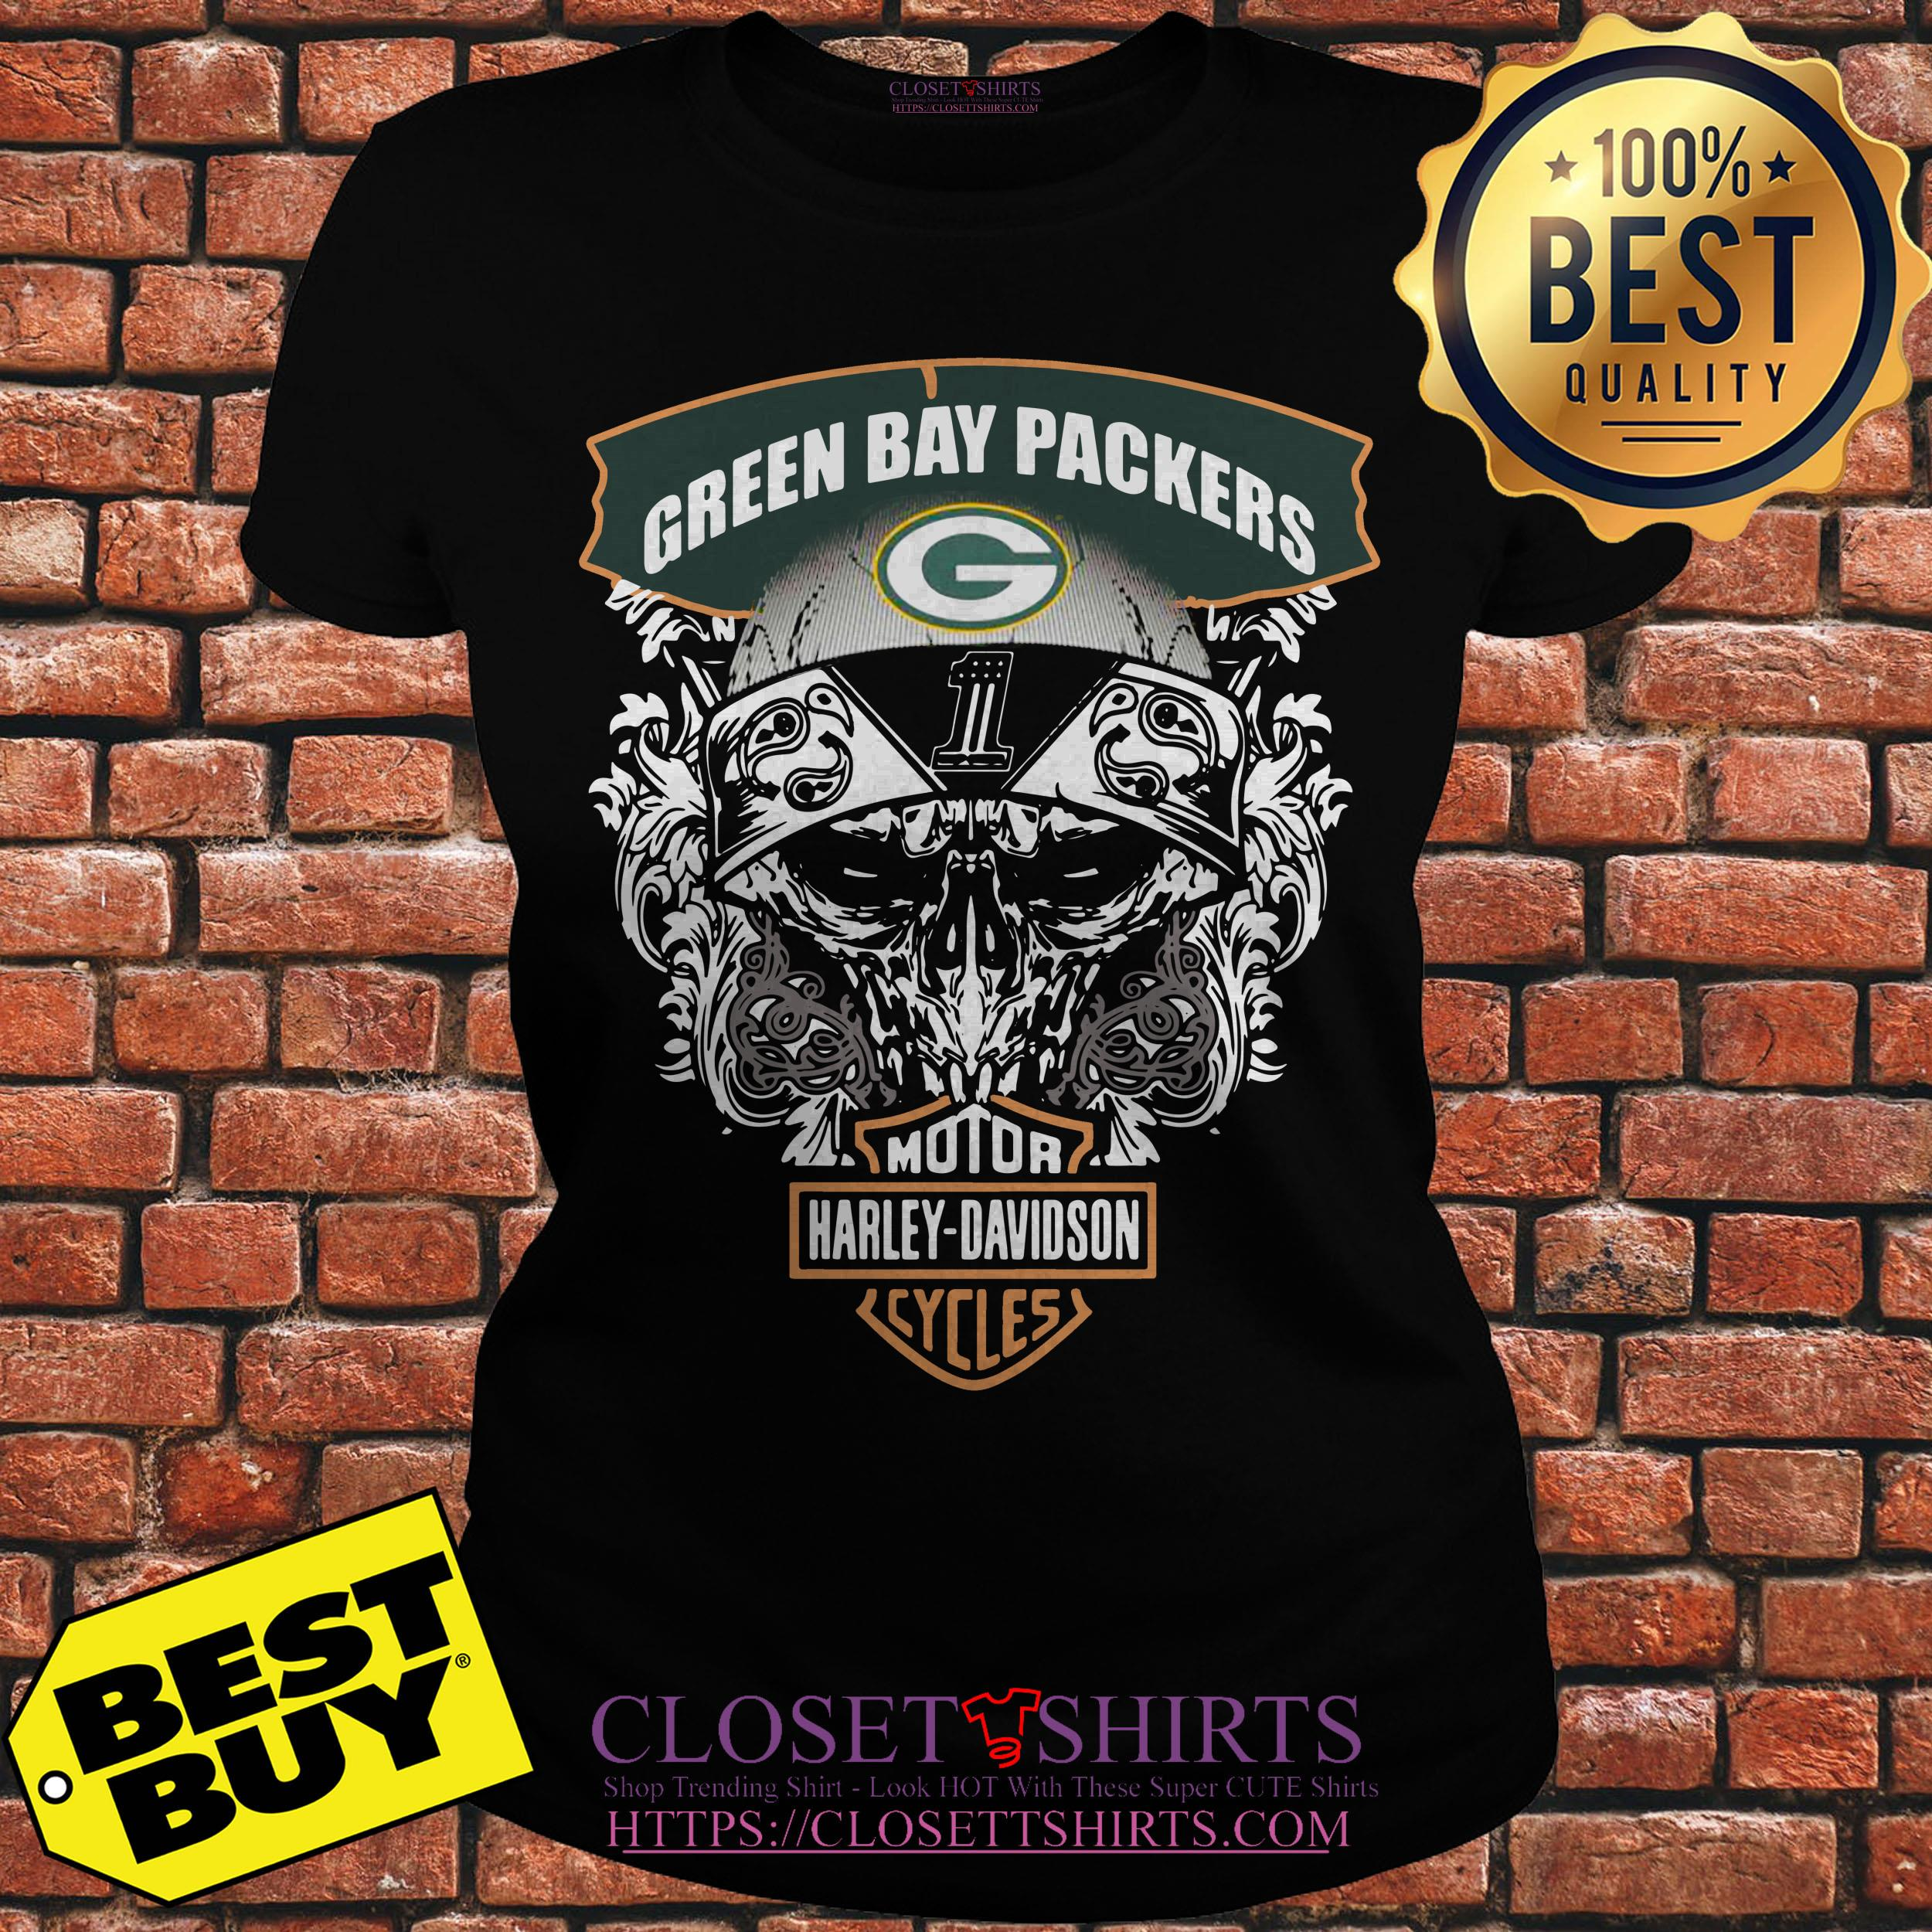 Green Bay Packers Harley Davidson Cycles ladies tee